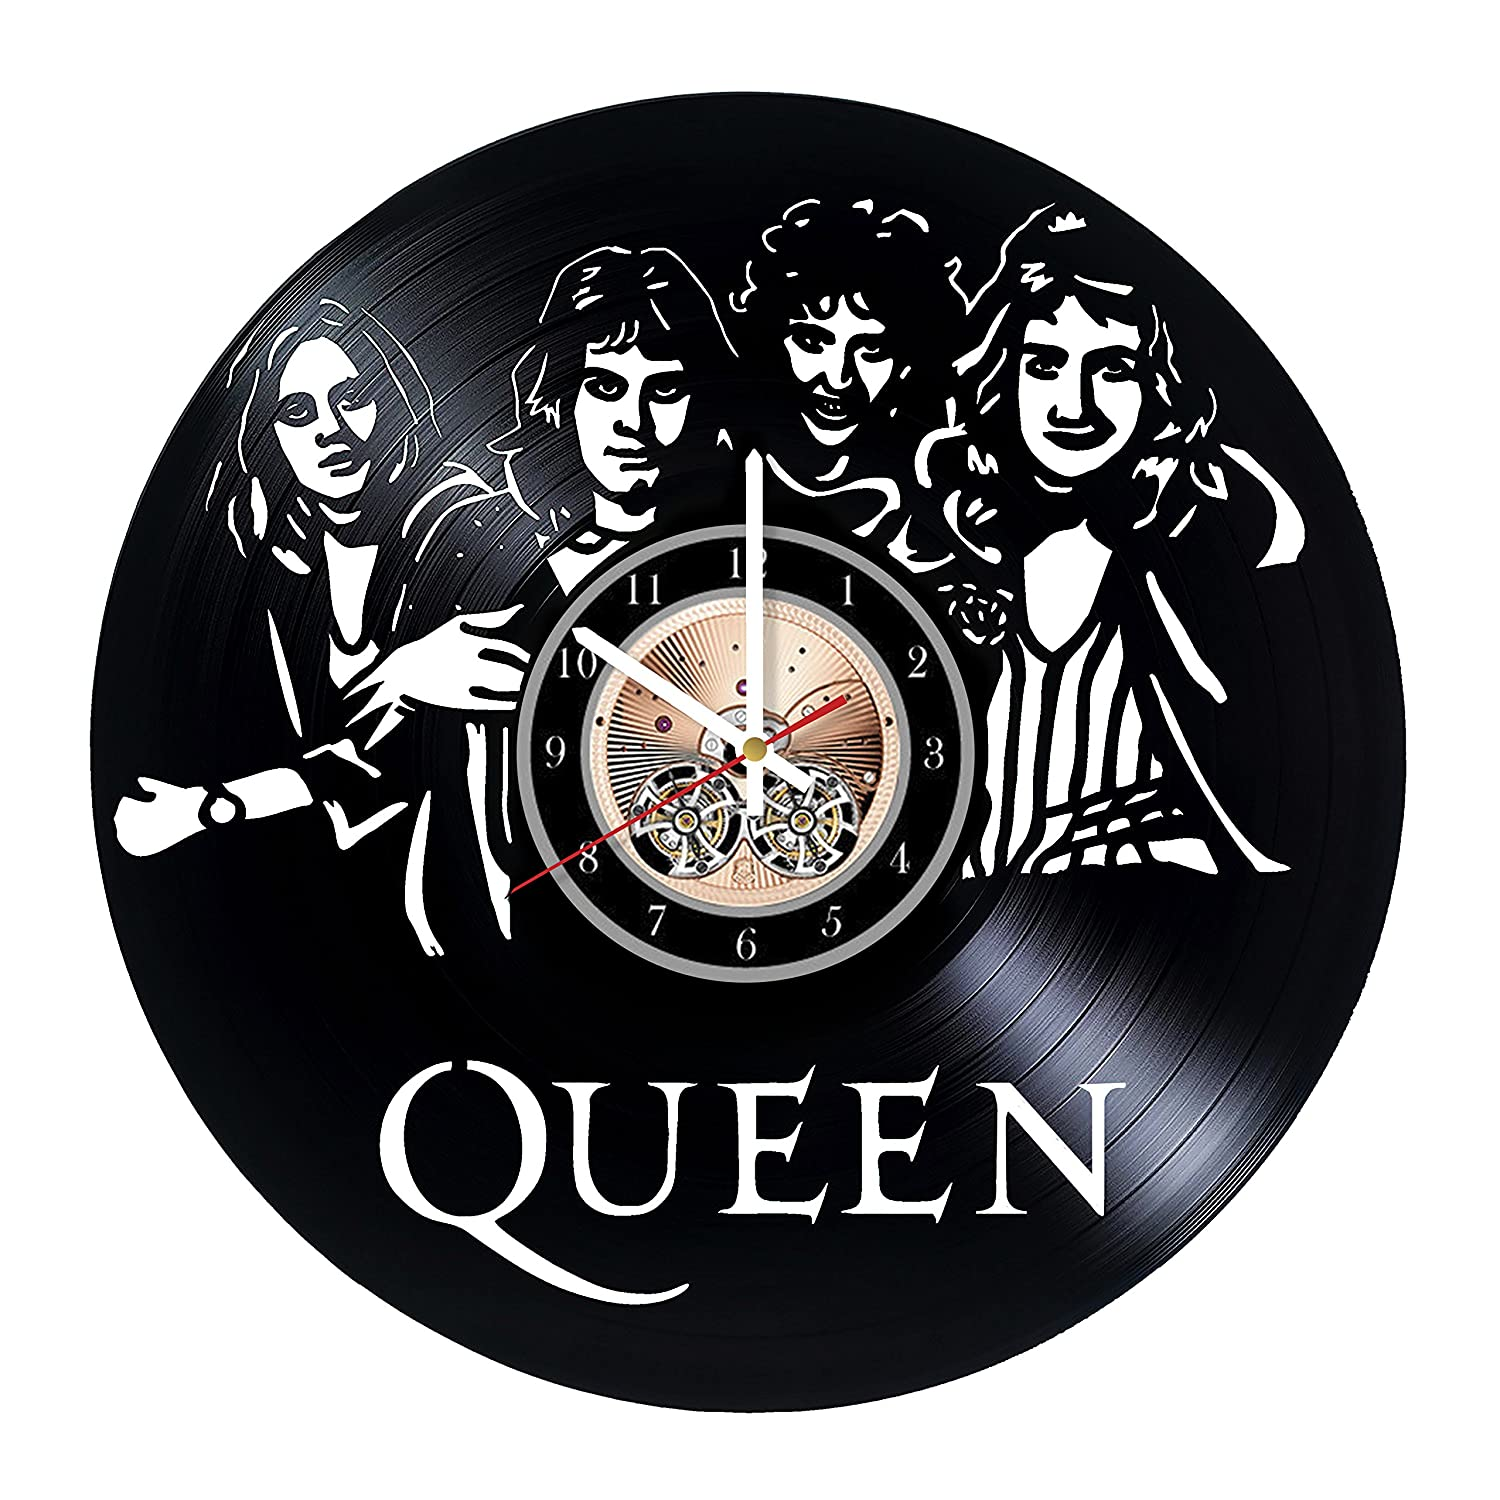 Get unique bedroom or kitchen wall decor Gift ideas for adults and youth Best Rock Music Band Unique Modern Art Queen Vinyl Record Wall Clock